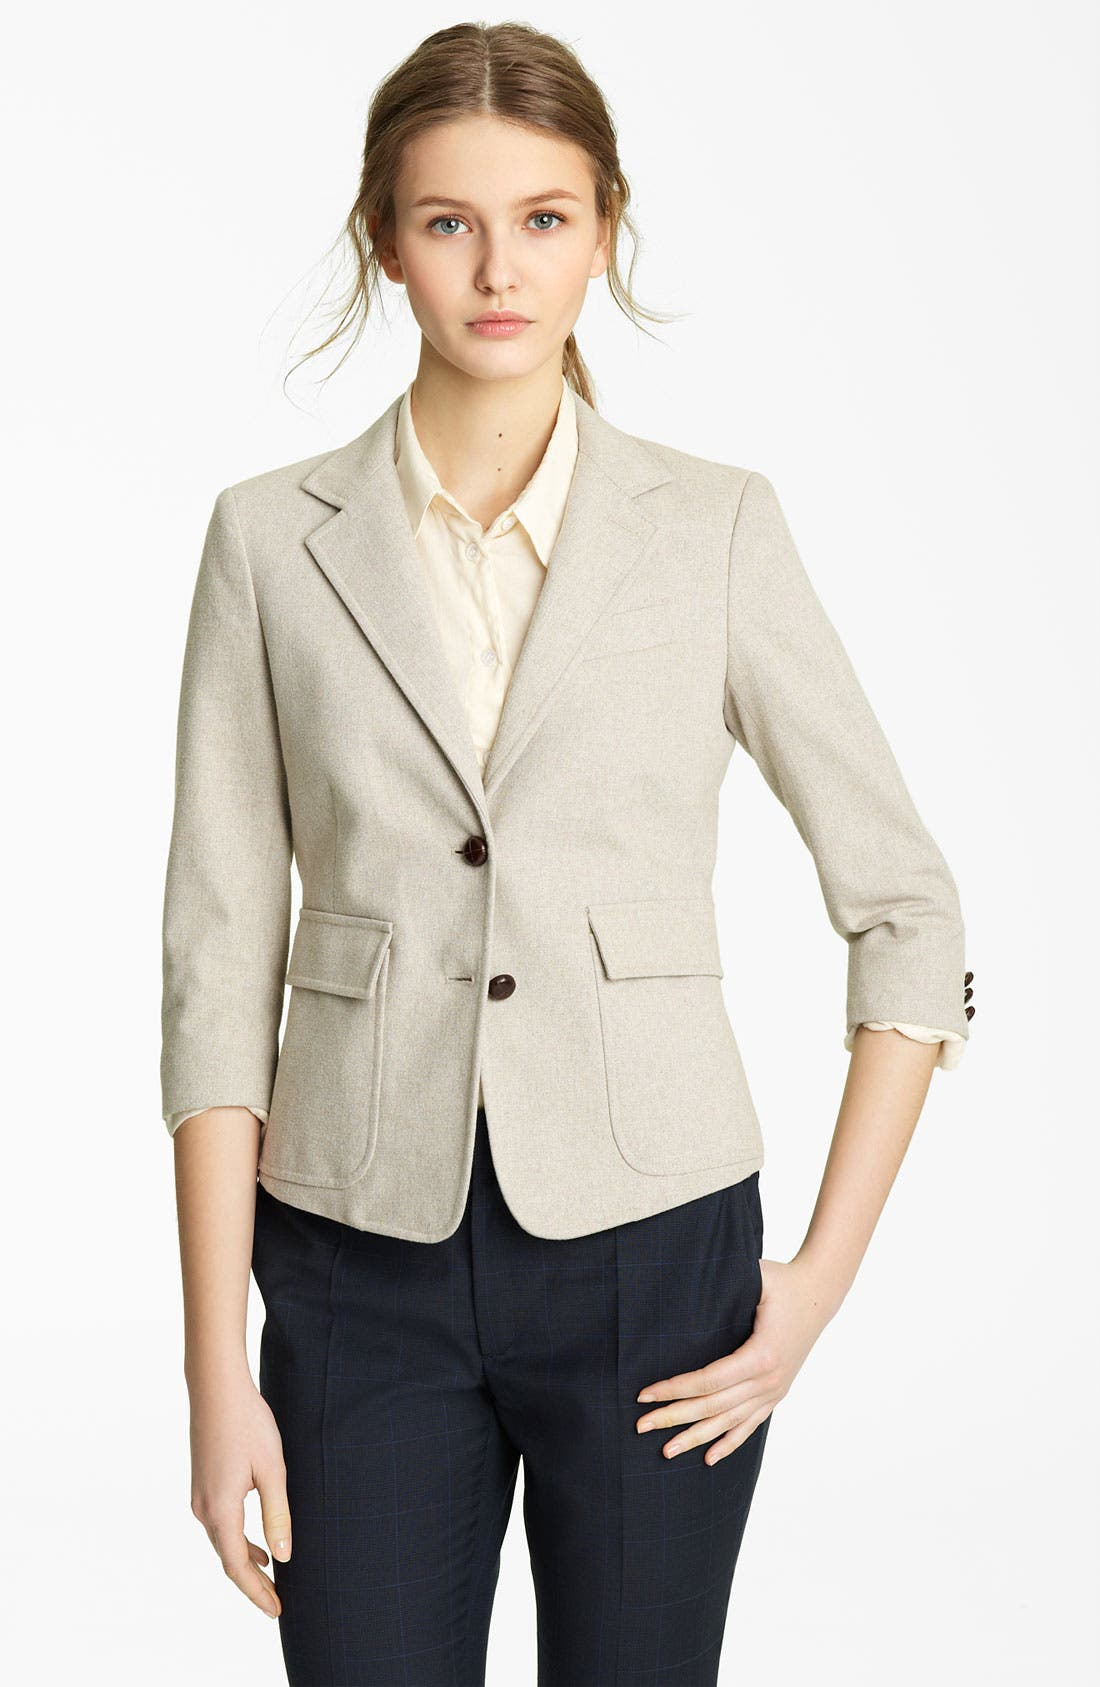 Alternate Image 1 Selected - Band of Outsiders Twill Blazer